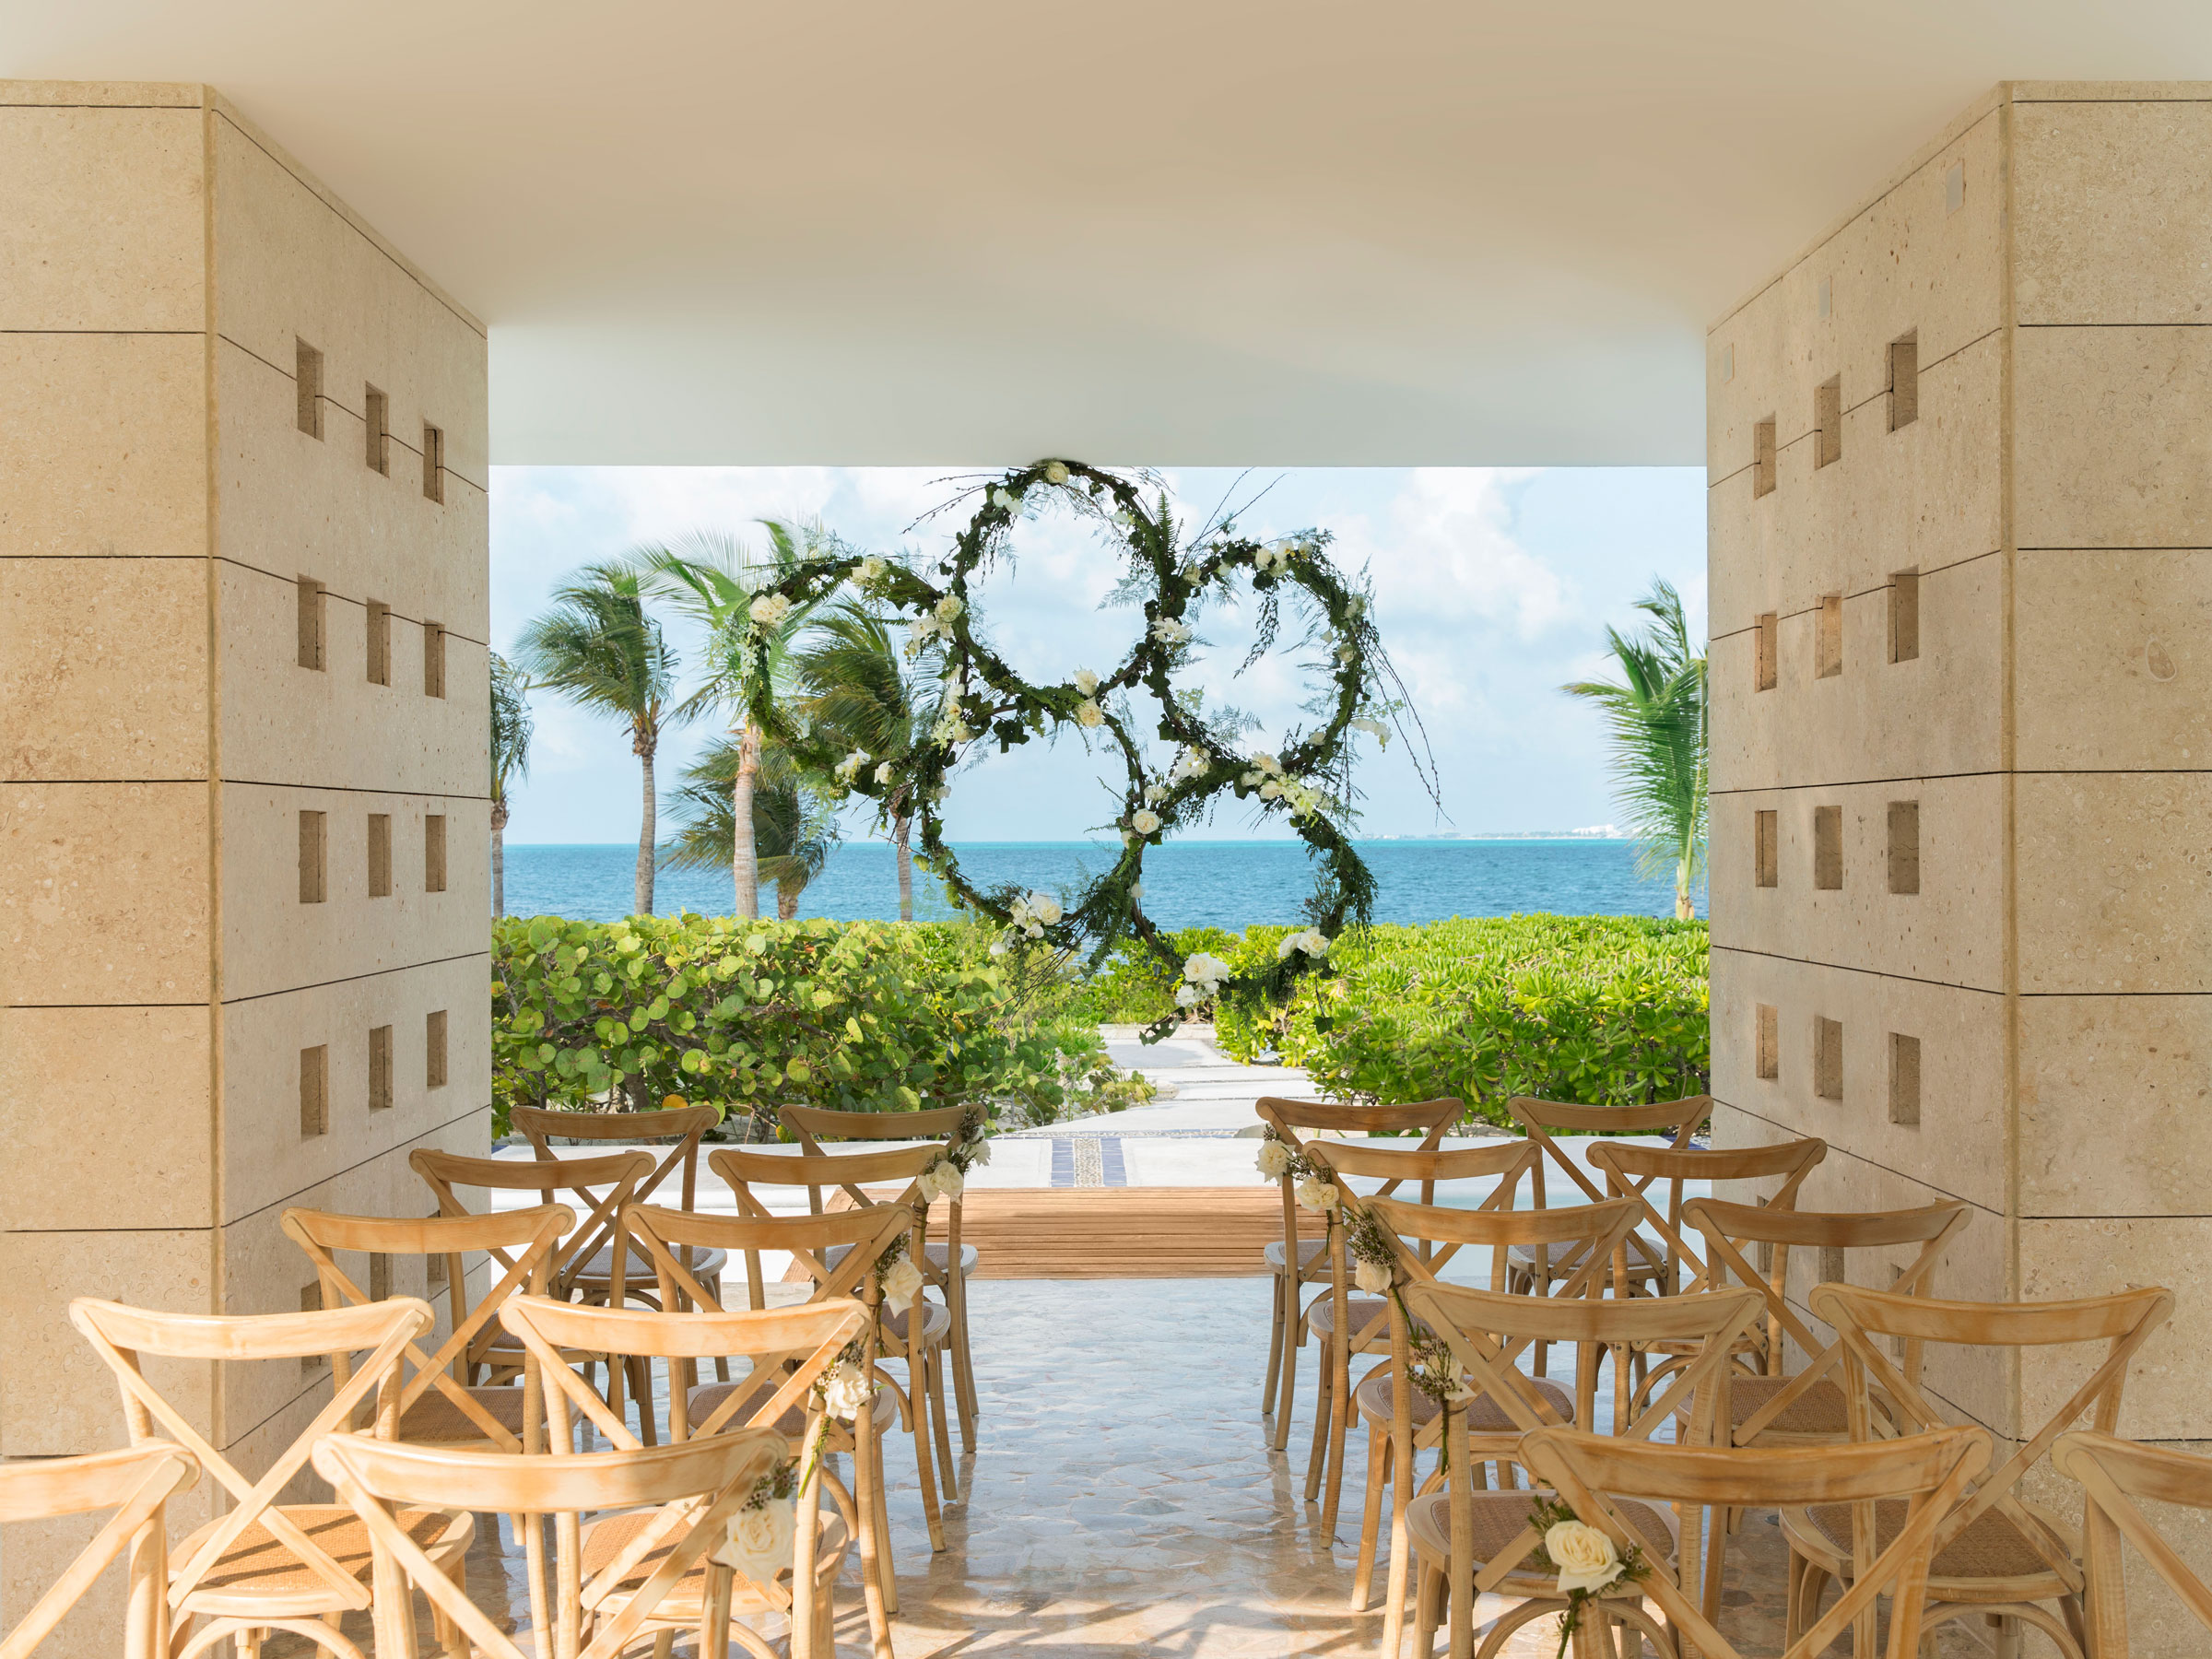 Caribbean Destination Wedding at an Adults Only Resort